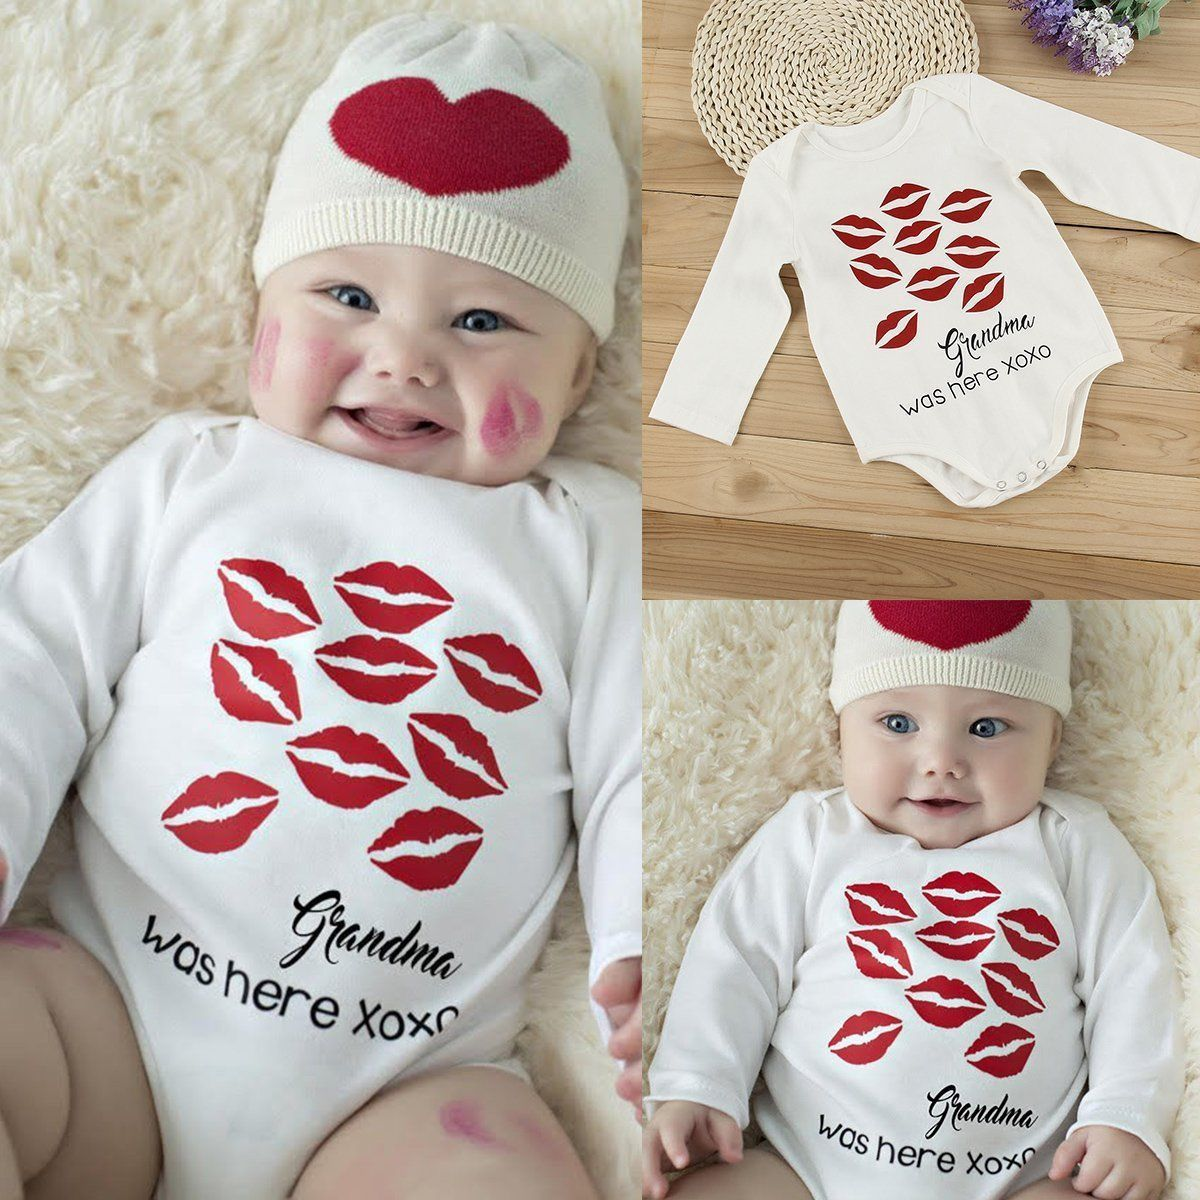 Newborn Baby Bodysuit Cotton Funny Romper Cute Infant Boy Girl Jumpsuit Grandma Was Here (Hat Not Included)